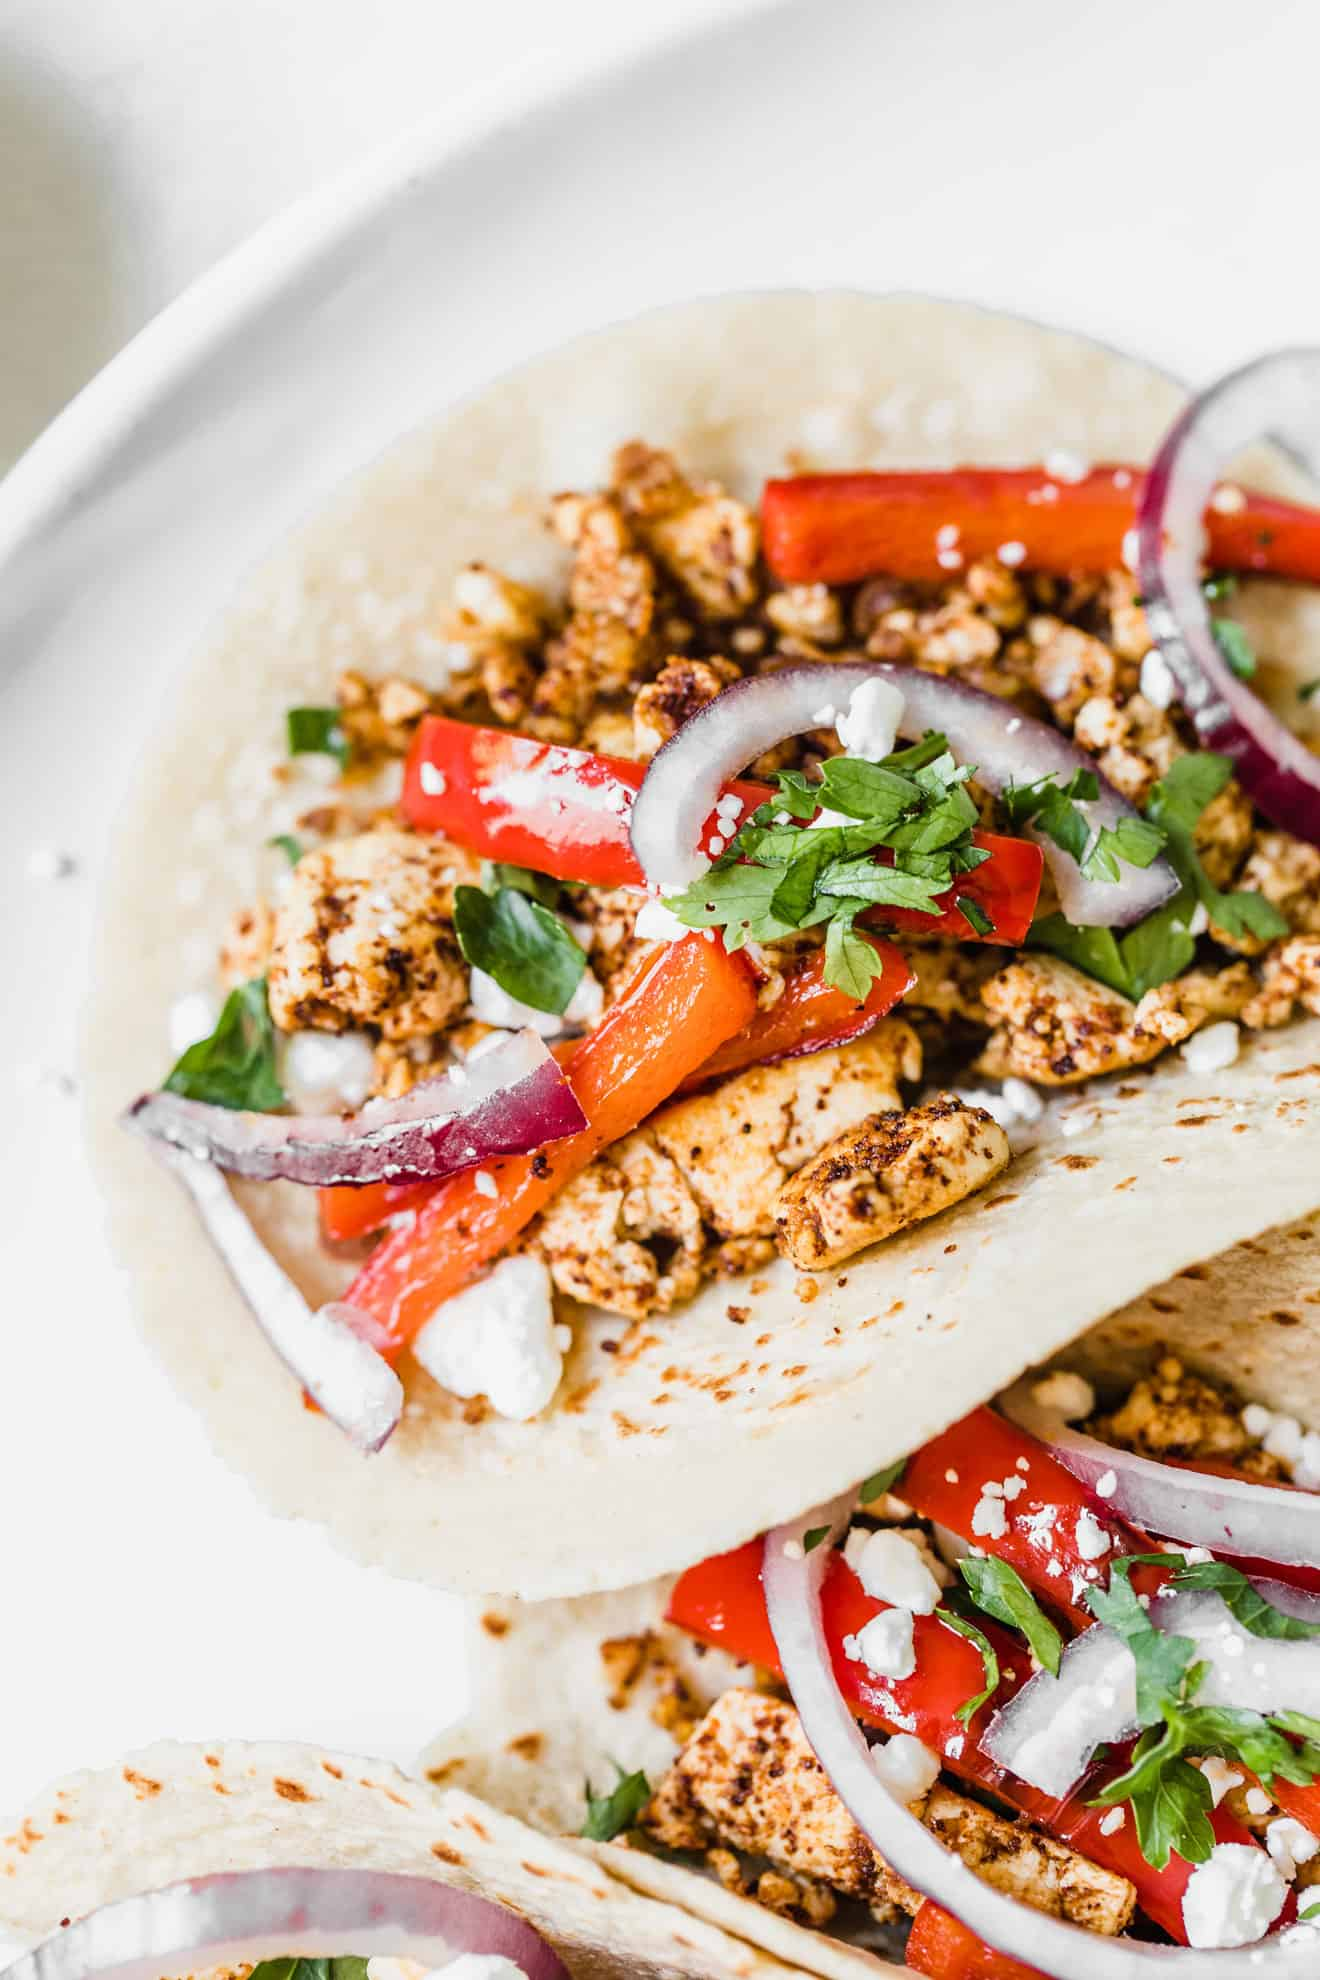 Spicy Vegetarian Tofu Tacos The Toasted Pine Nut